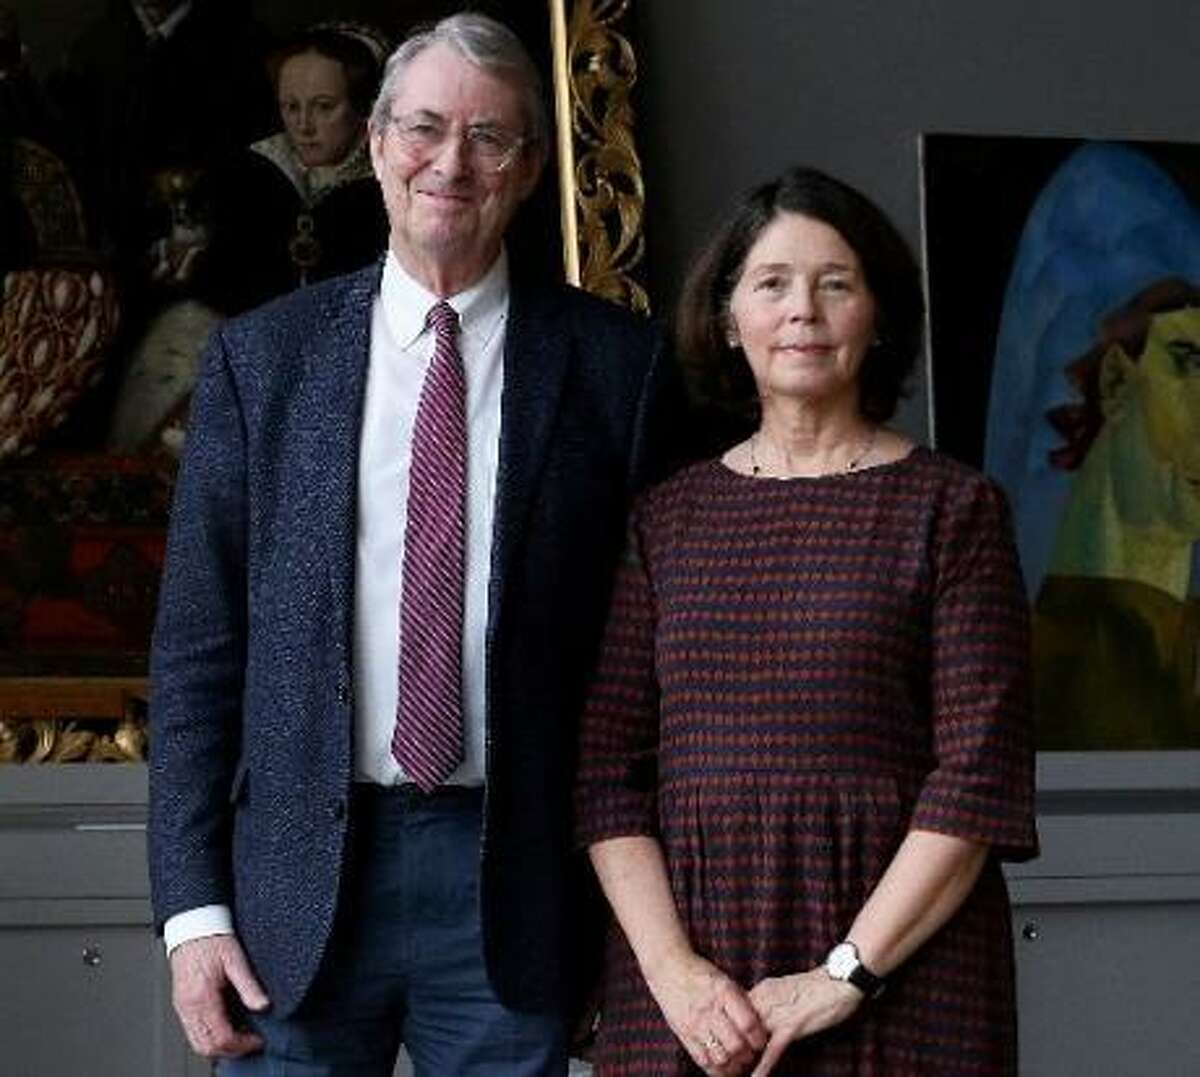 David Bomford, Chairman of the MFAH's Department of Conservation as well as its Audrey Jones Beck Curator, Department of European Art, and his wife, Zahira (Soni) Véliz Bomford, Senior Paintings Conservator, will retire in March 2019.